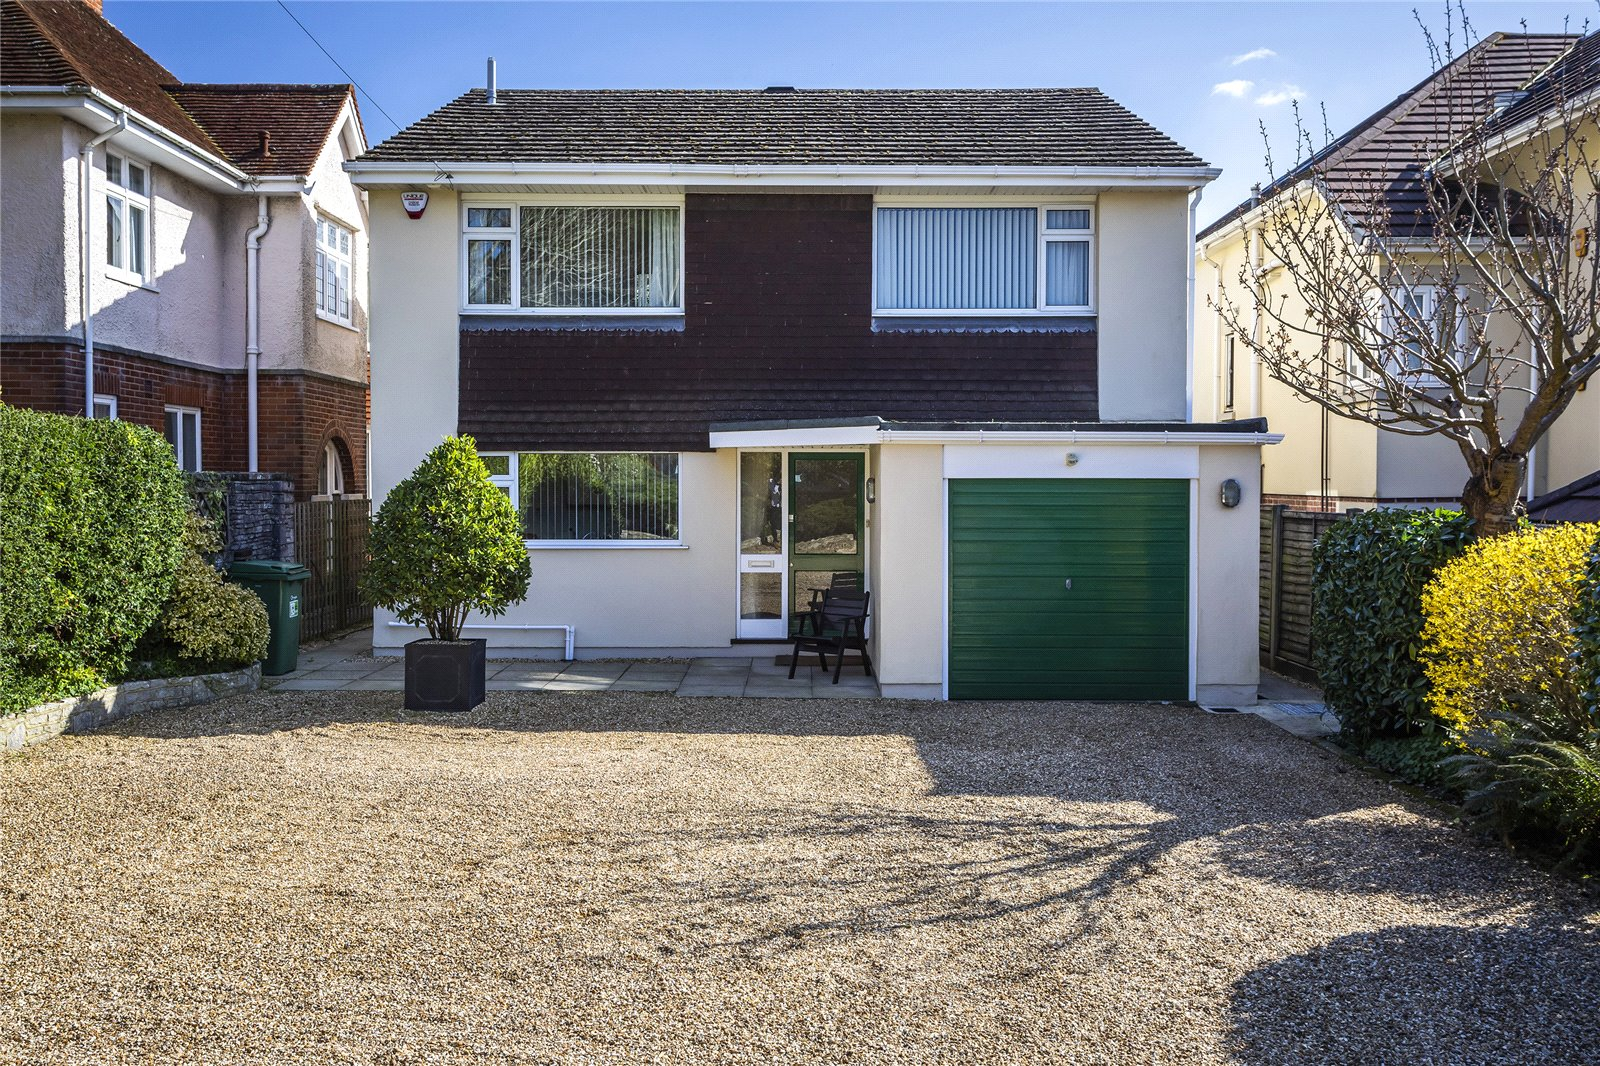 4 bed house for sale in Constitution Hill Road, Lower Parkstone, BH14